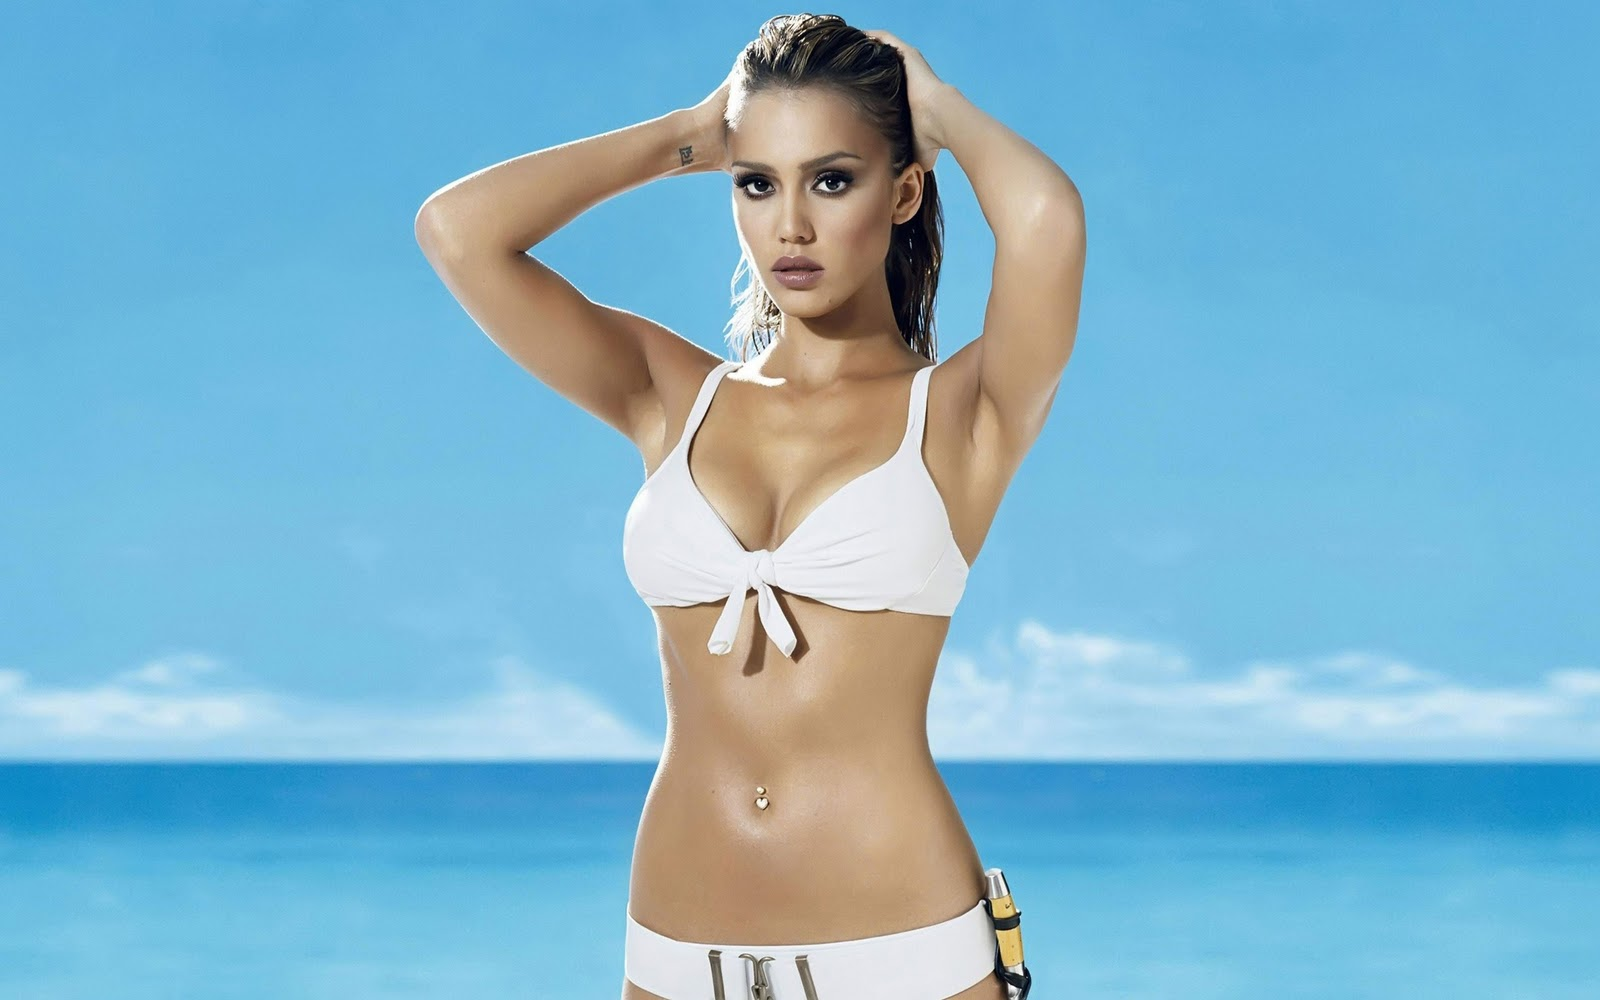 http://3.bp.blogspot.com/_14grgzfQGYA/TPhaTzzQorI/AAAAAAAACX0/XpPbOQN899U/s1600/21-jessica-alba-swimsuit-hd-widescreen-wallpapers-2560x1600.jpeg